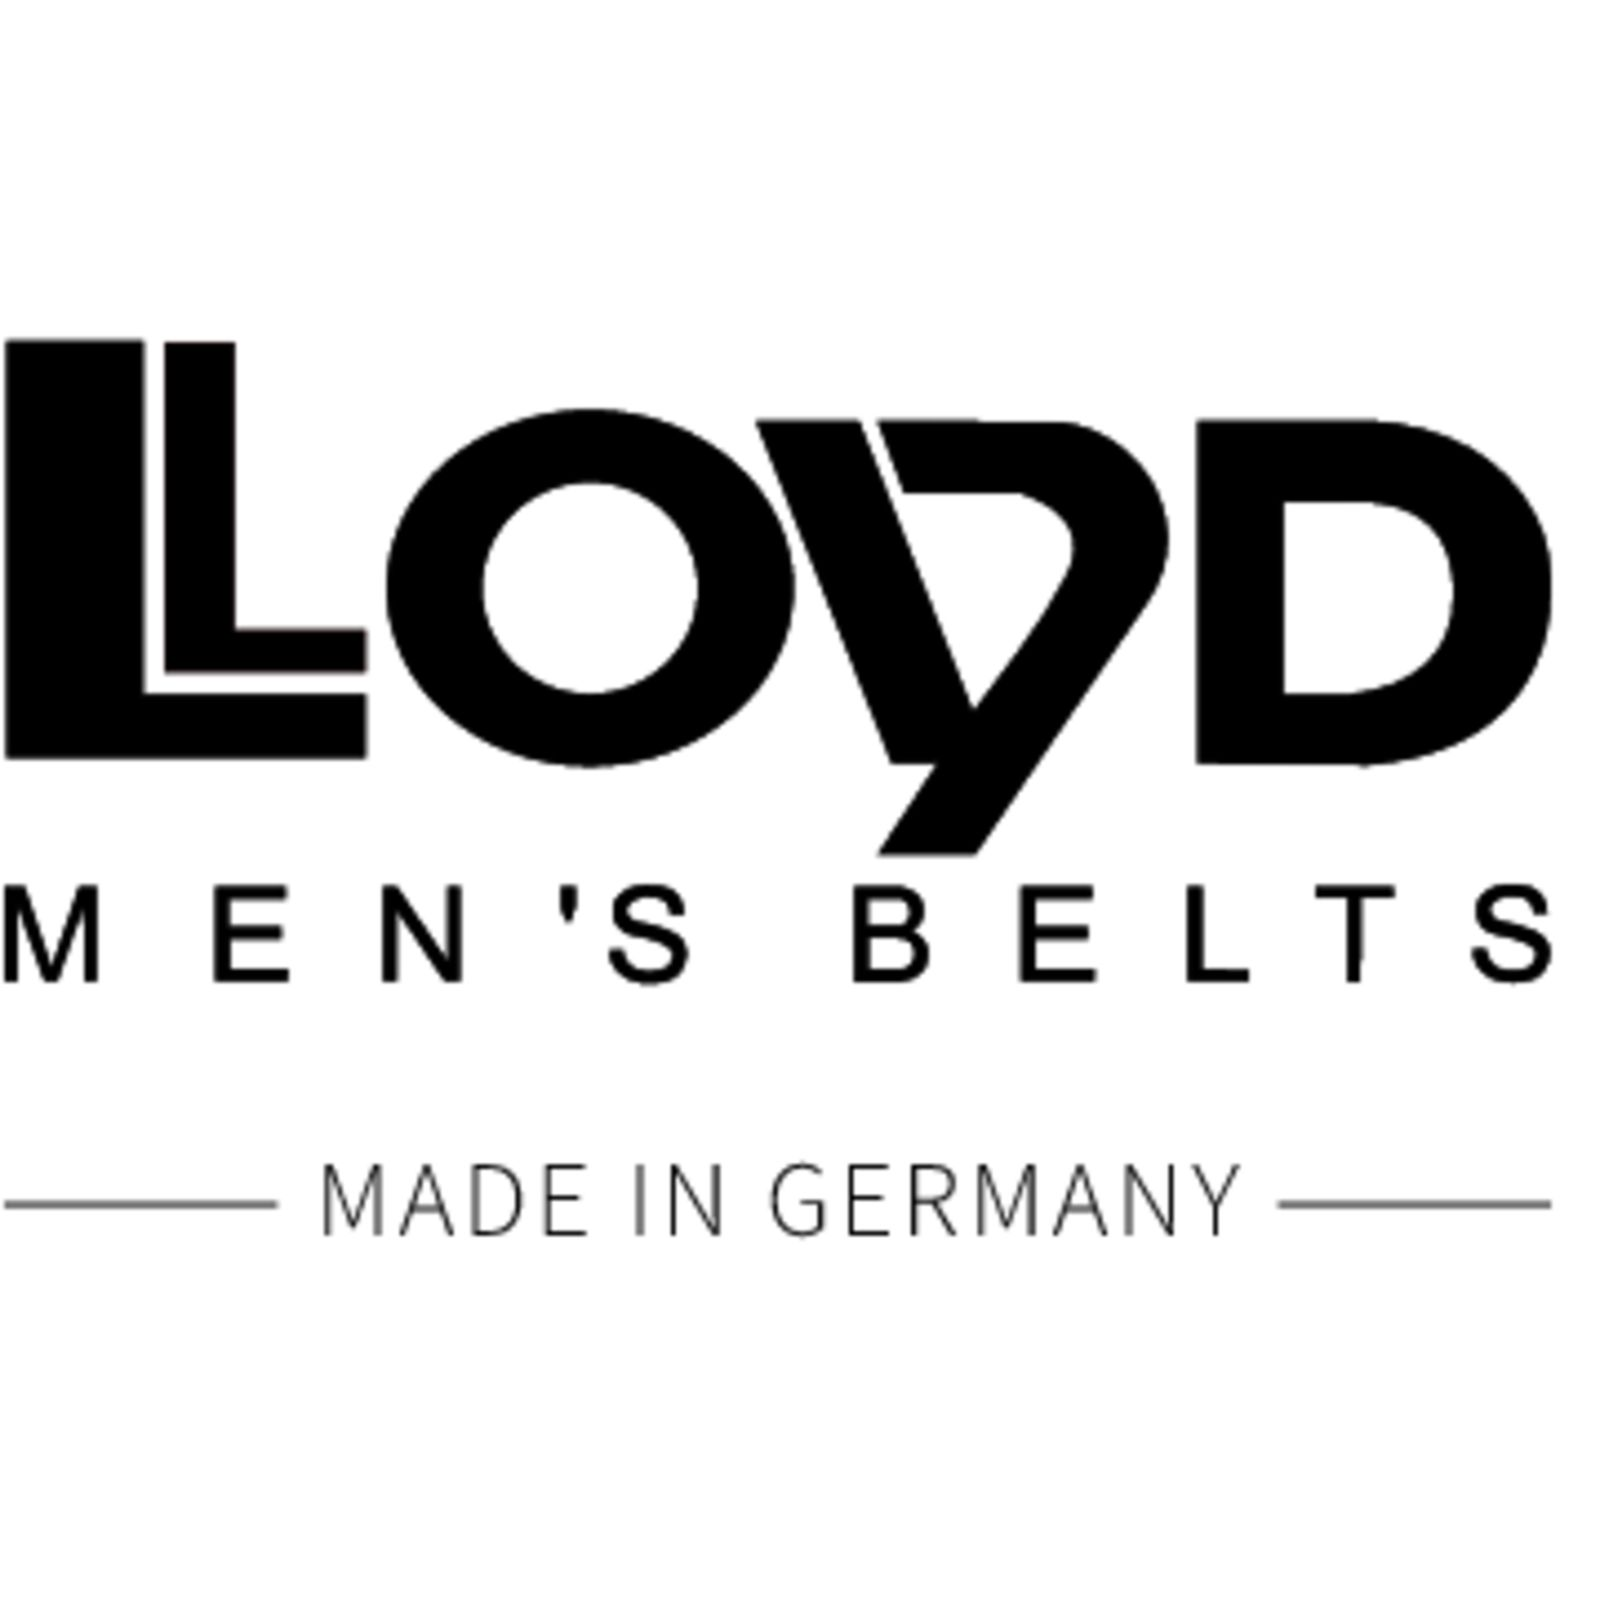 LLOYD Men's Belts